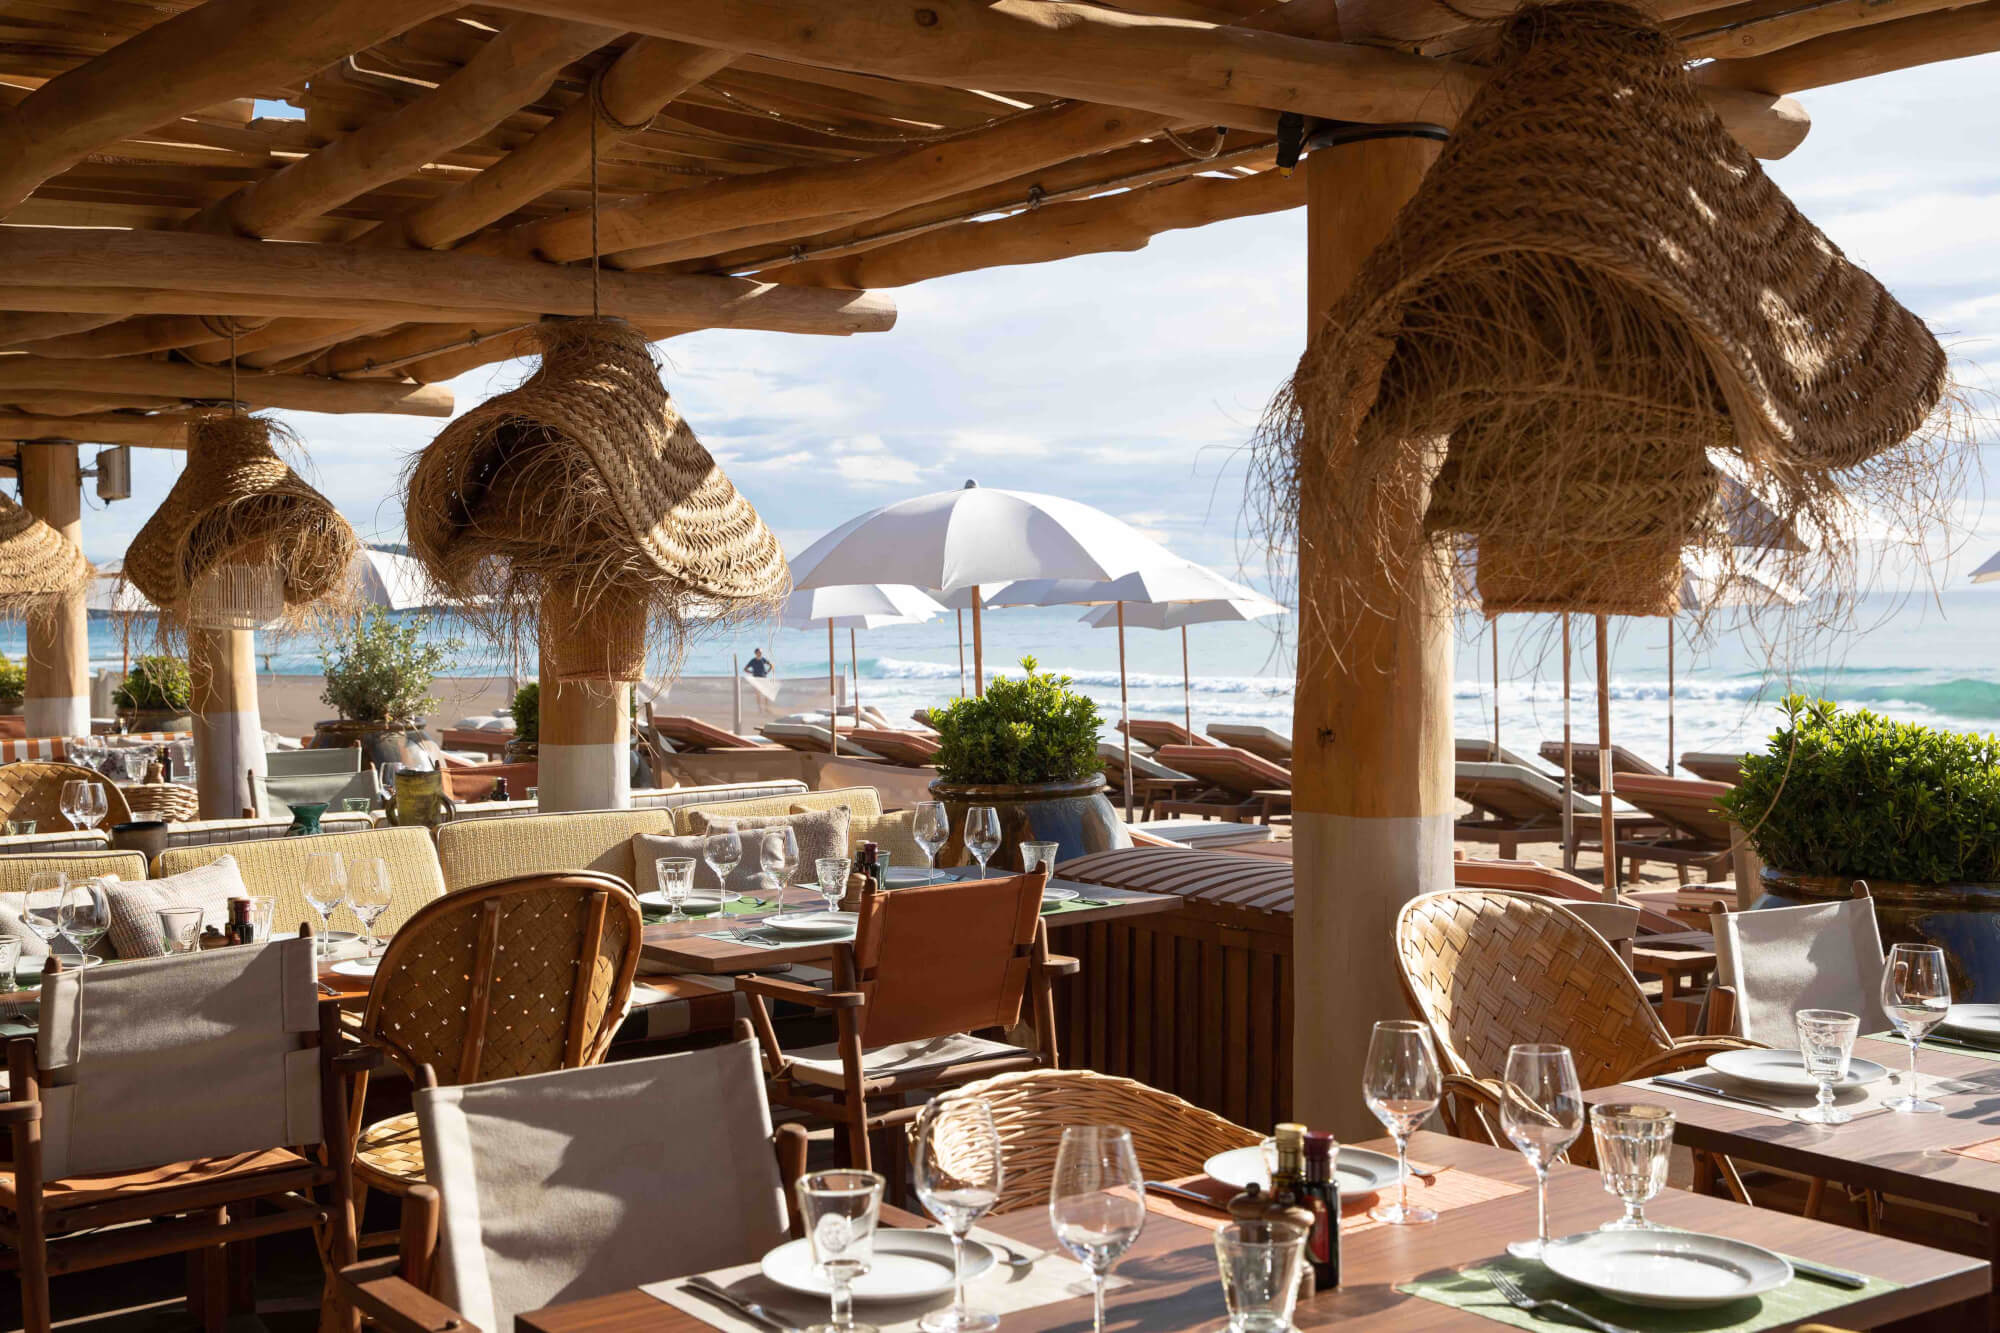 LA RESERVE A LA PLAGE :  A NEW ICON IN SAINT TROPEZ  - Bars Clubs